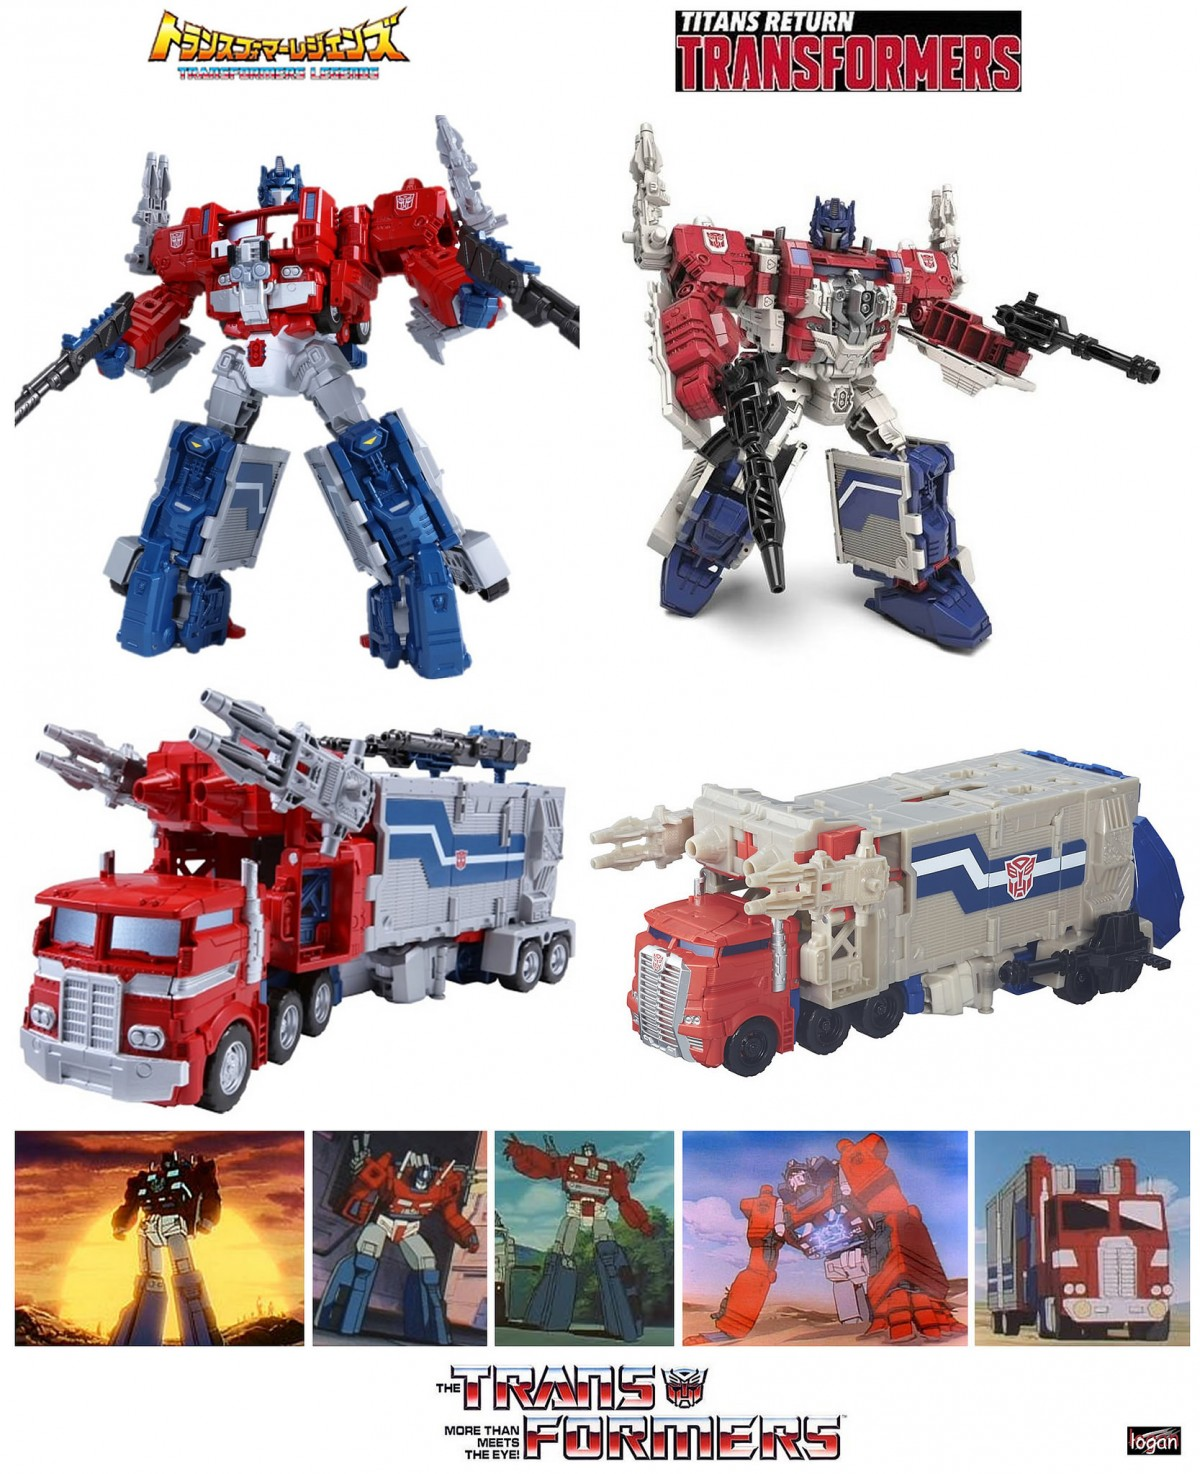 Transformers News: New Images and Comparisons of Takara Tomy Transformers Legends LG35 Super Ginrai (Powermaster Prime)